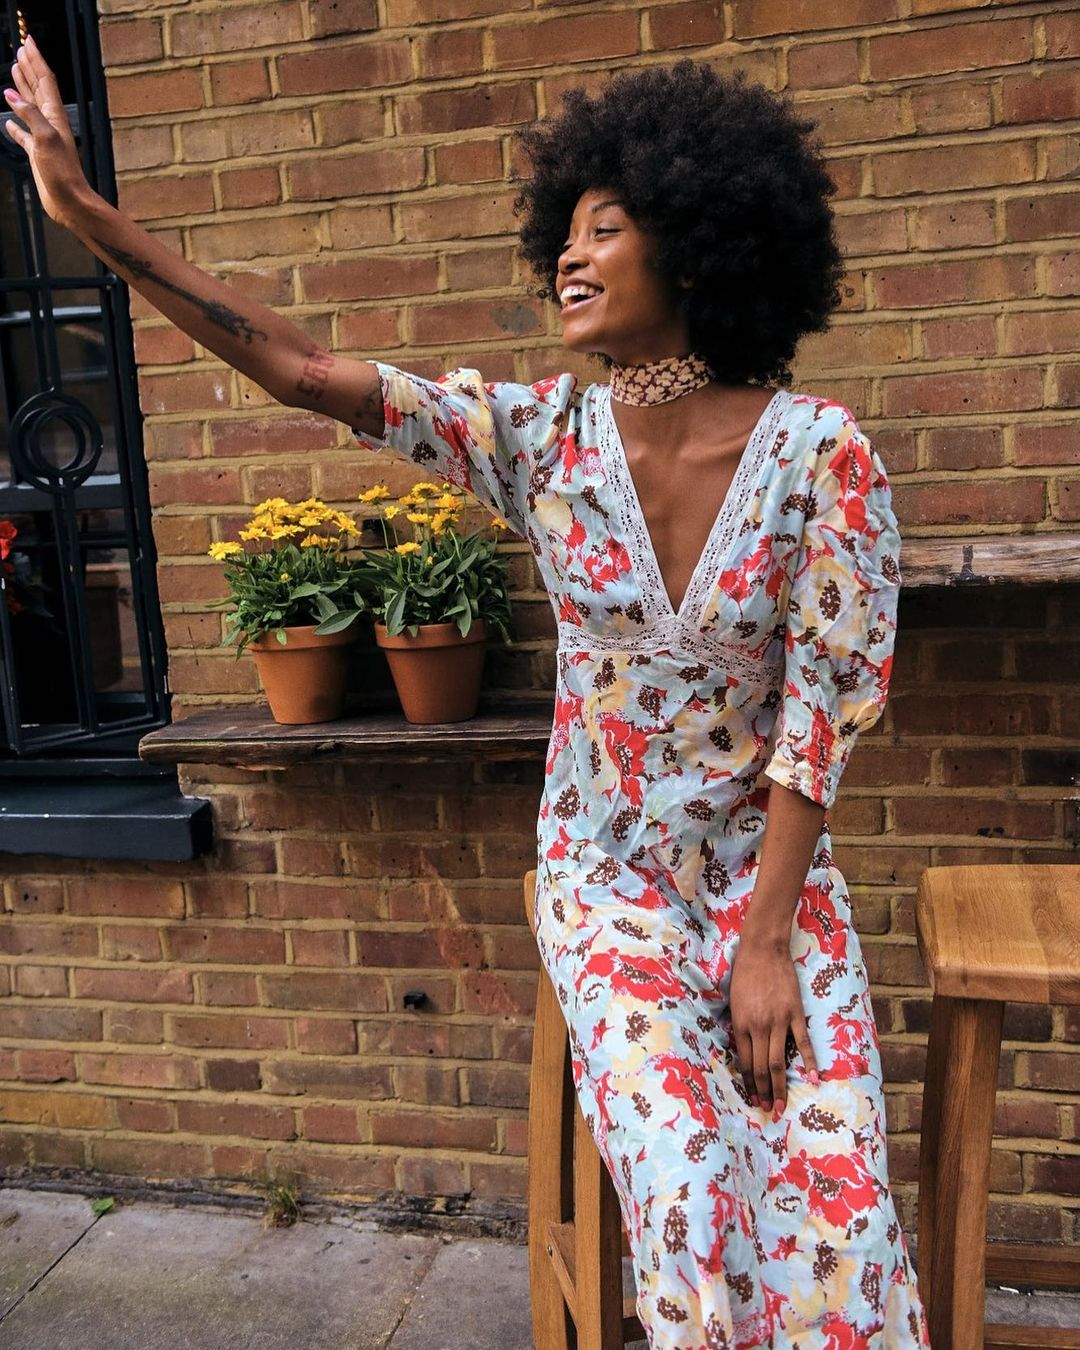 The Best Wedding Guest Dresses That Are Chic but Affordable